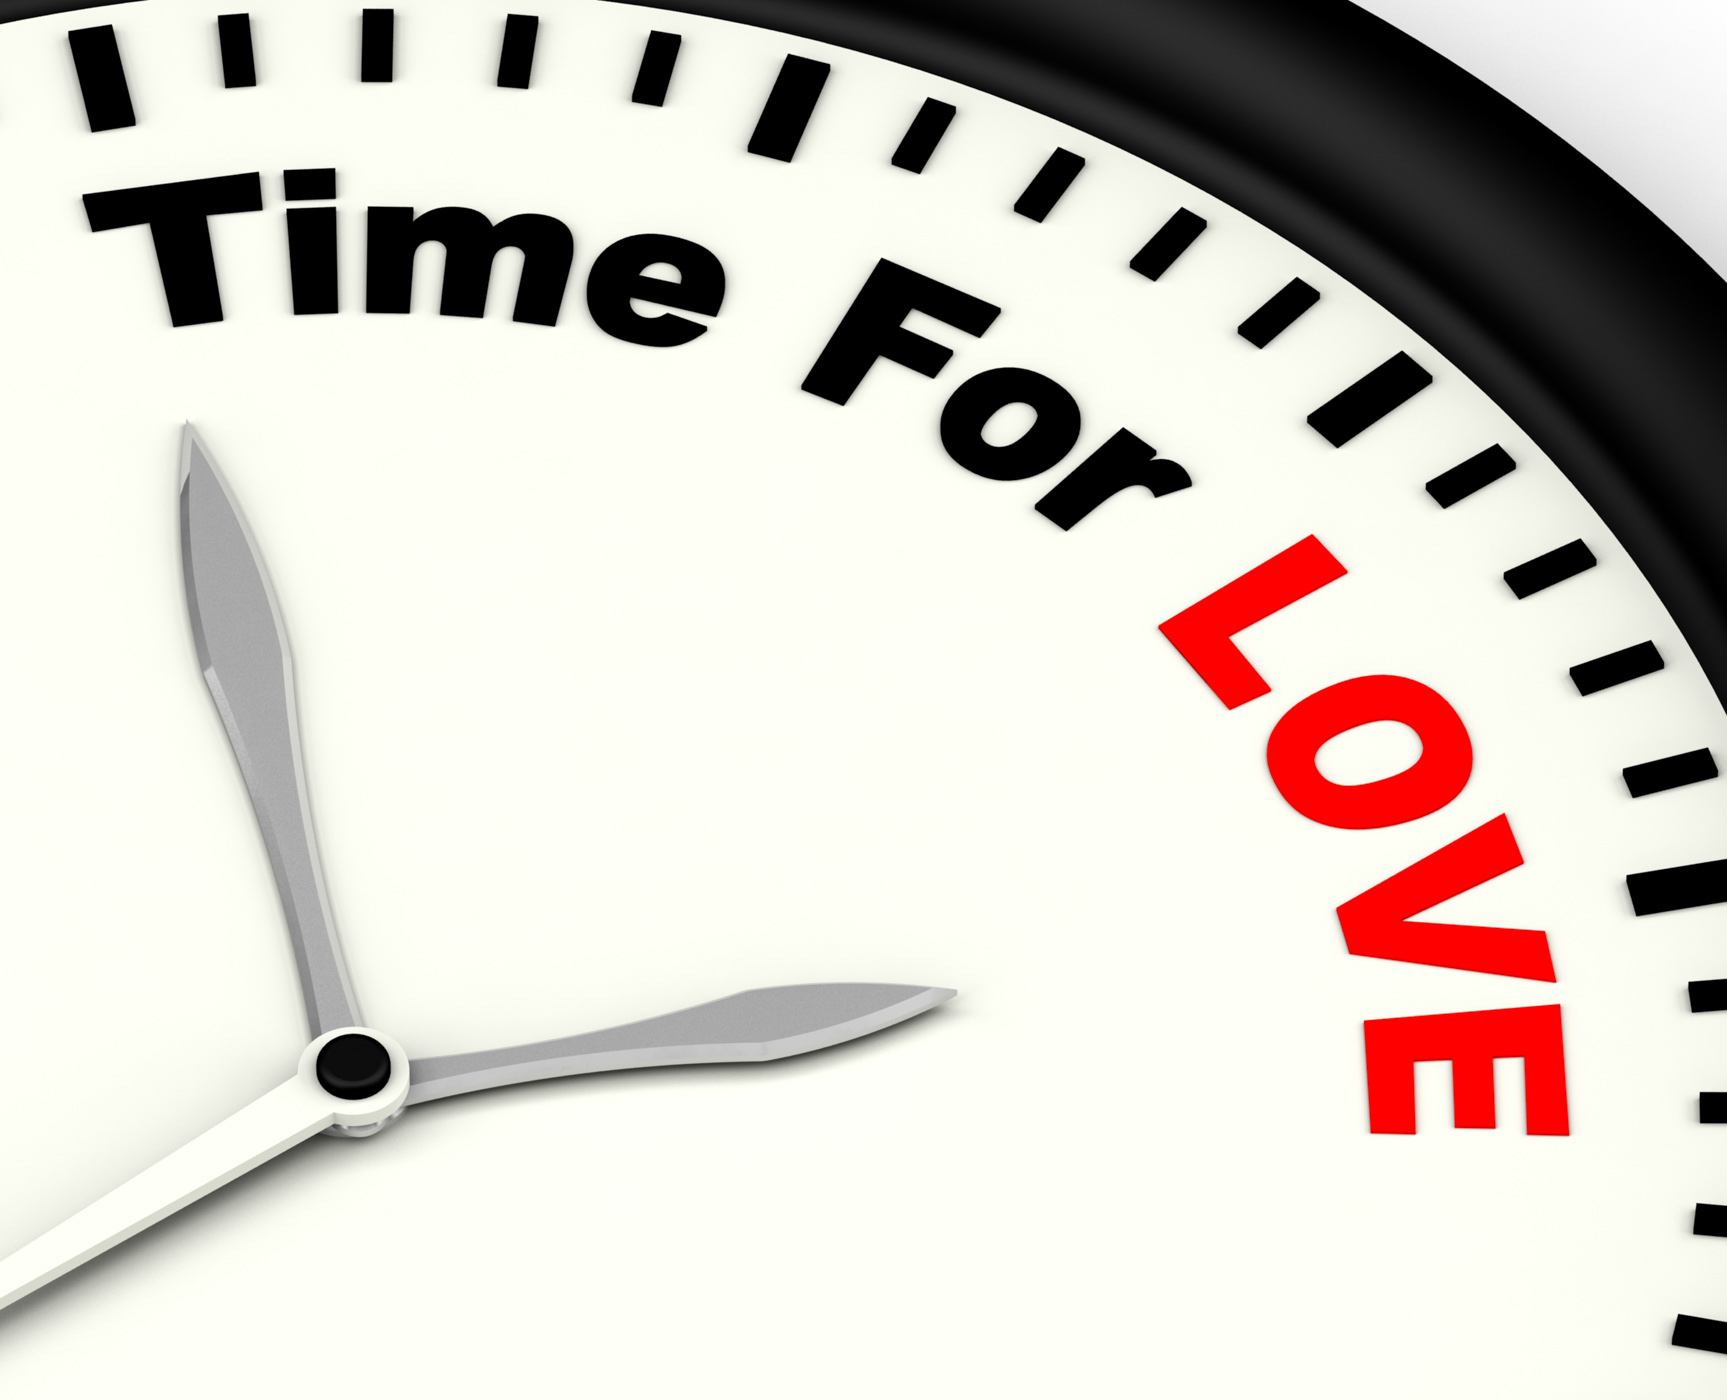 Time for love message showing romance and feelings photo